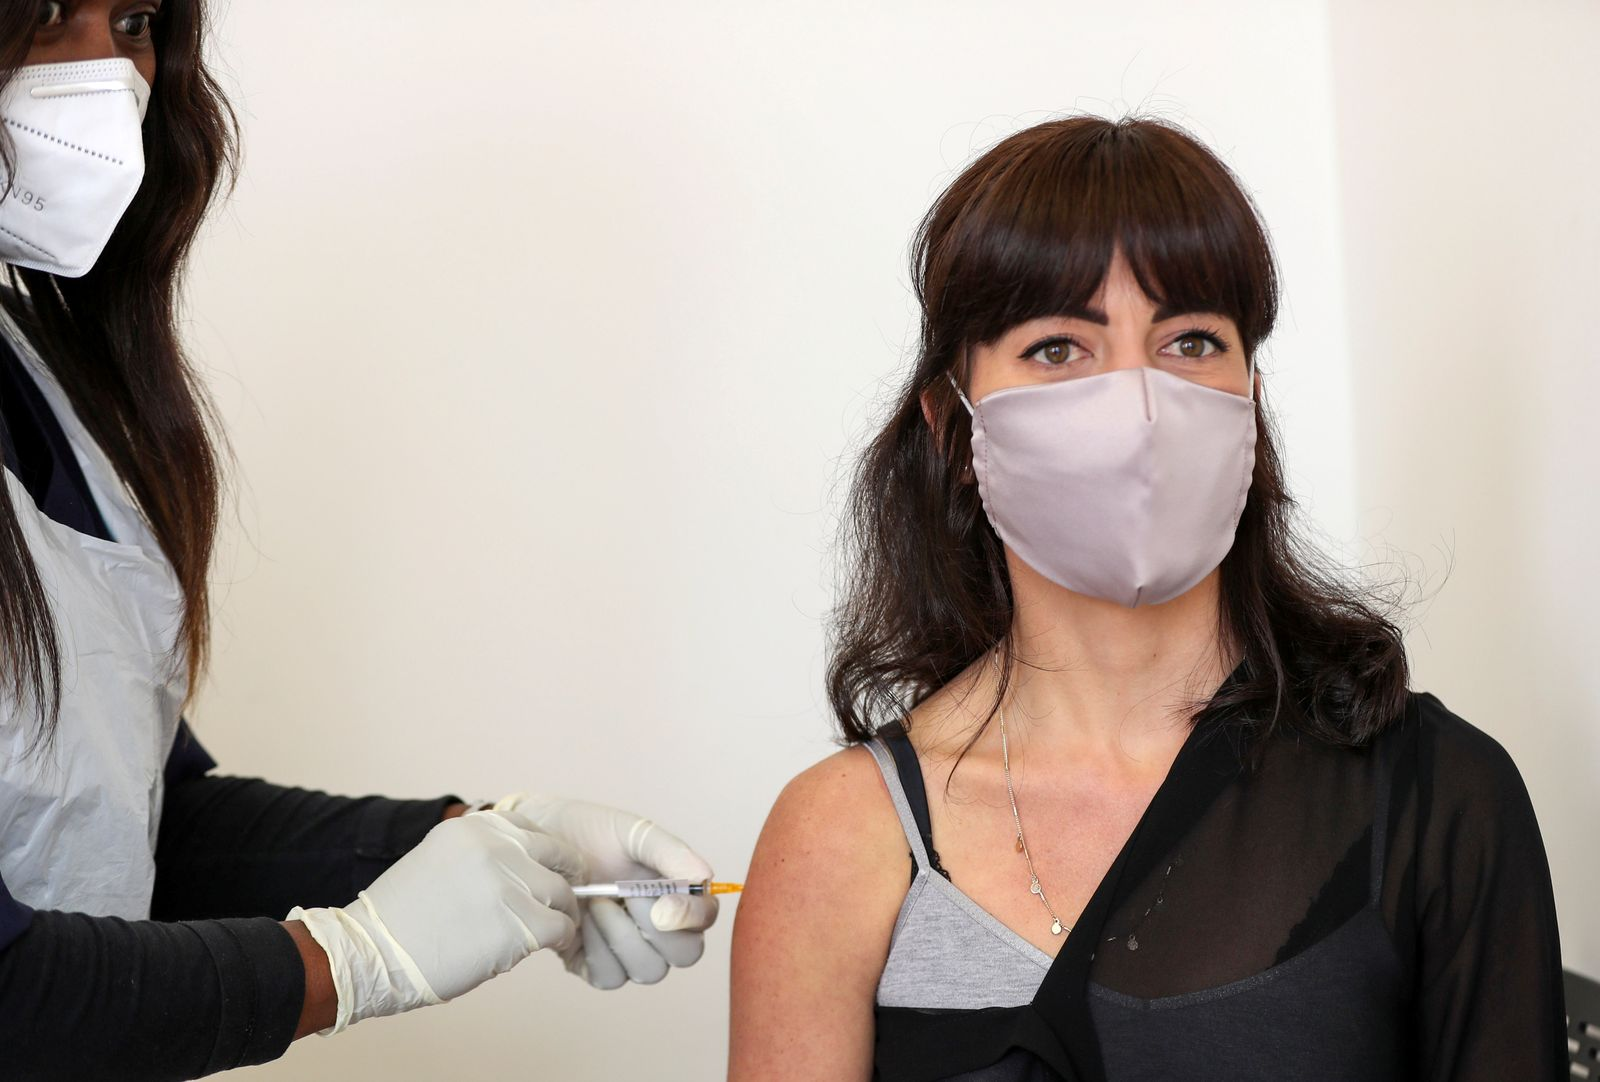 Robyn Porteous, a vaccine trials' volunteer, is injected as part of the country's human clinical trial for potential vaccines after being tested for the coronavirus disease (COVID-19), at the Wits RHI Shandukani Research Centre in Johannesburg